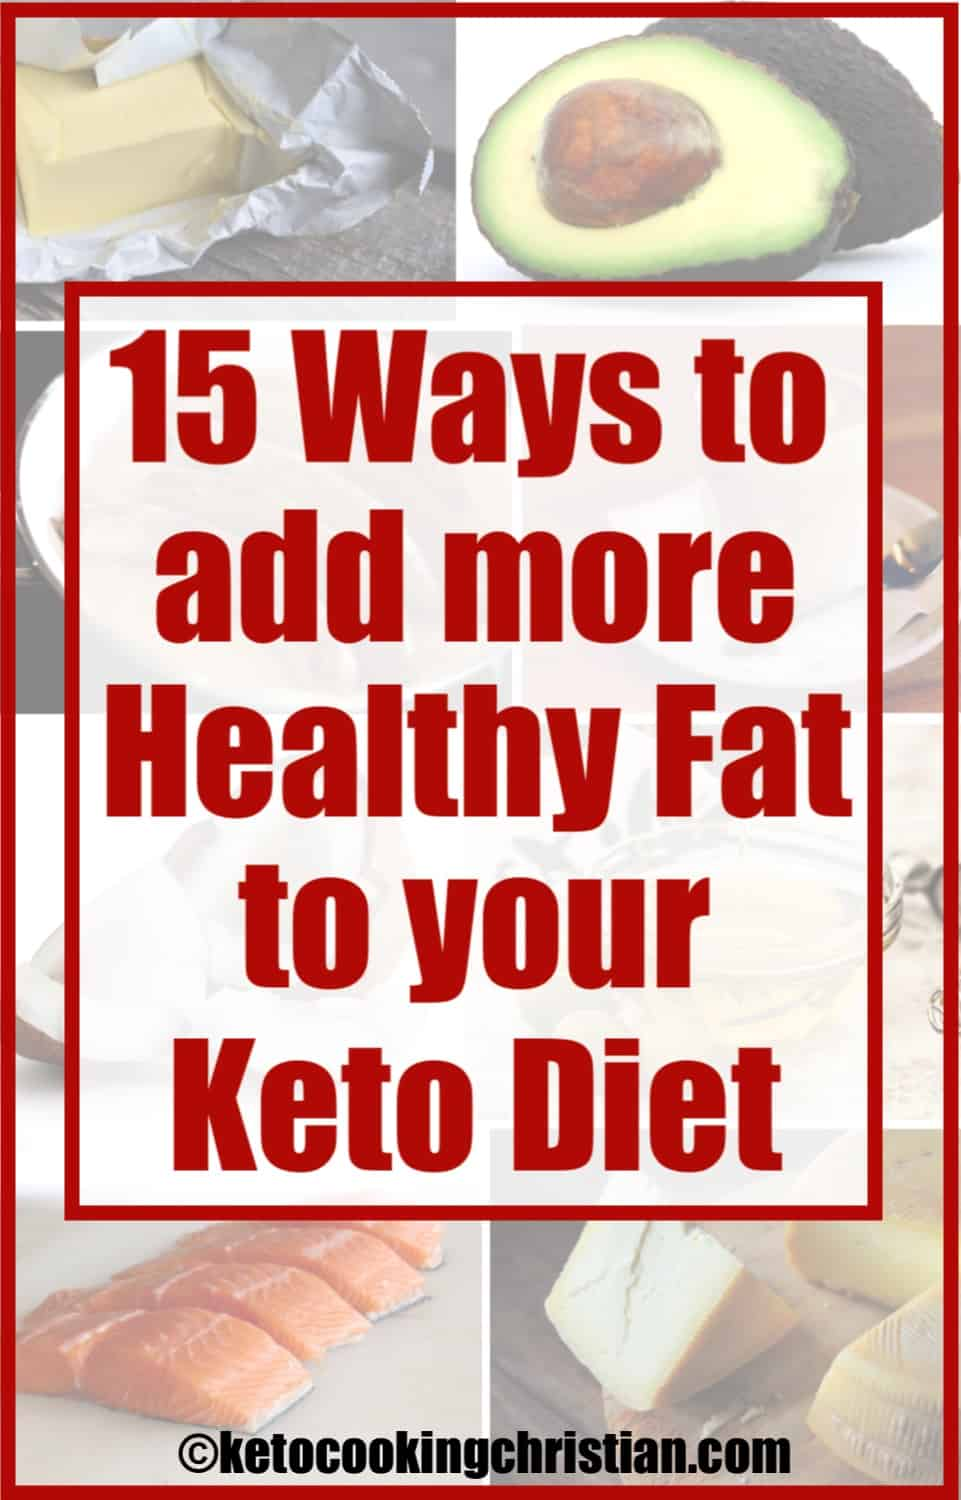 15 Ways to Add More Fat into your Keto Diet